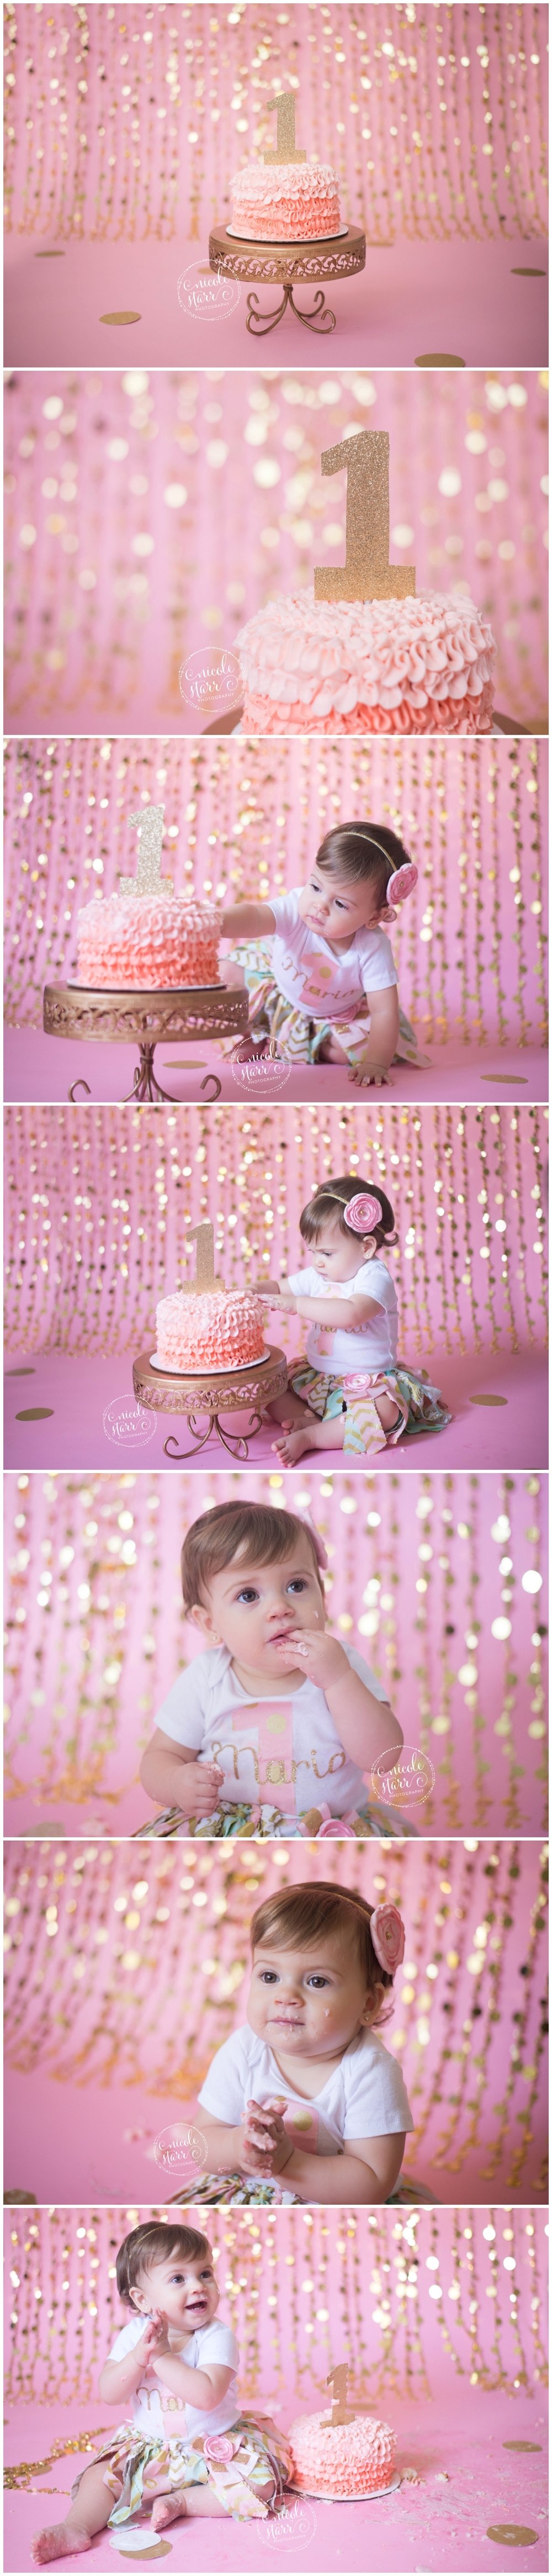 boston-baby-photographer-pink-gold-cake-smash.jpg